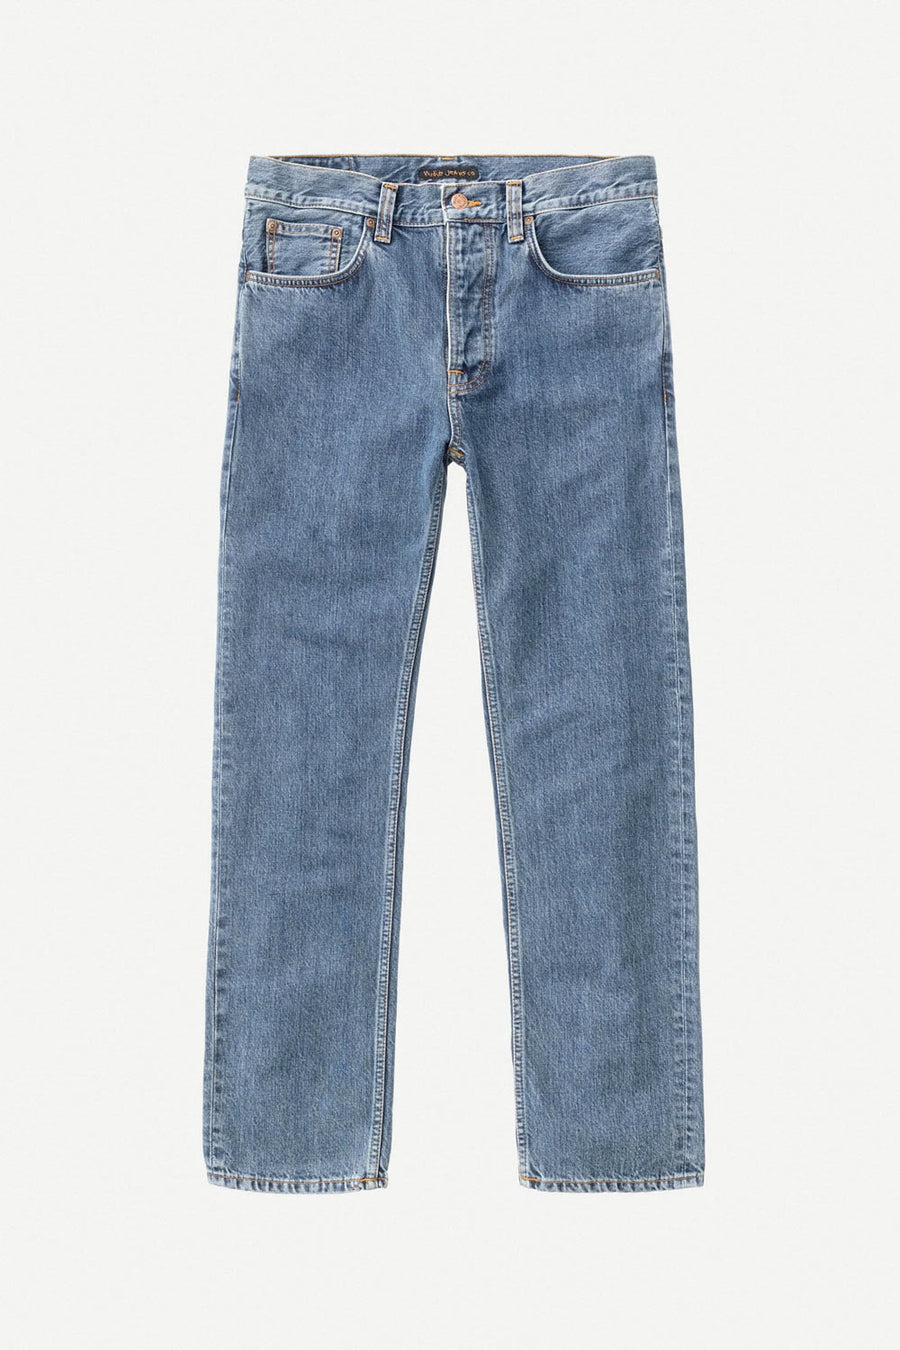 029 Jeans Nudie Sleepy Sixteen Friendly Blue